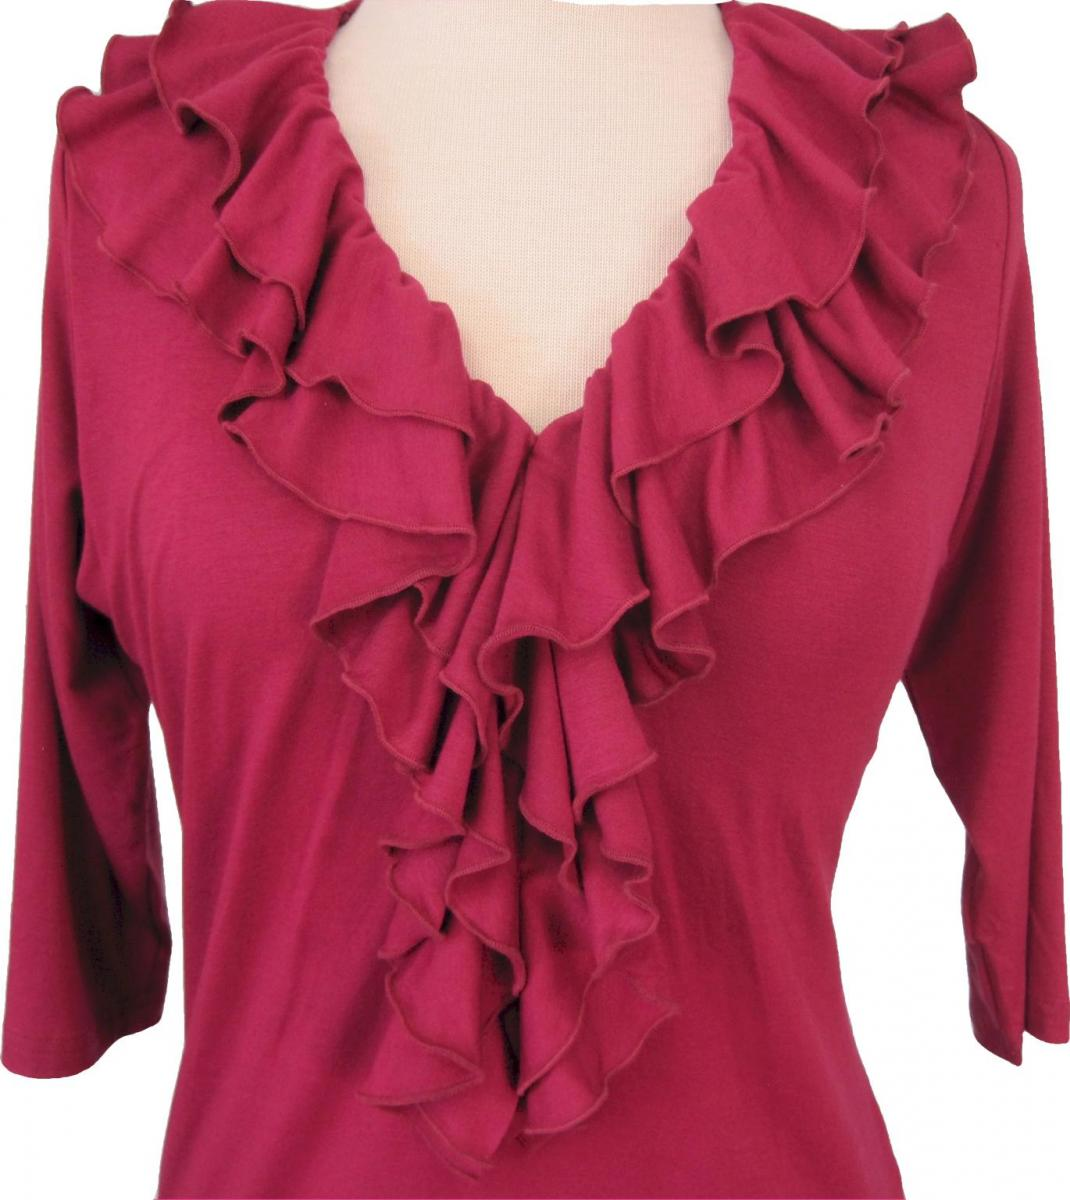 mommy-gear-aphrodite-nursing-top-cranberry-ruffle.jpg